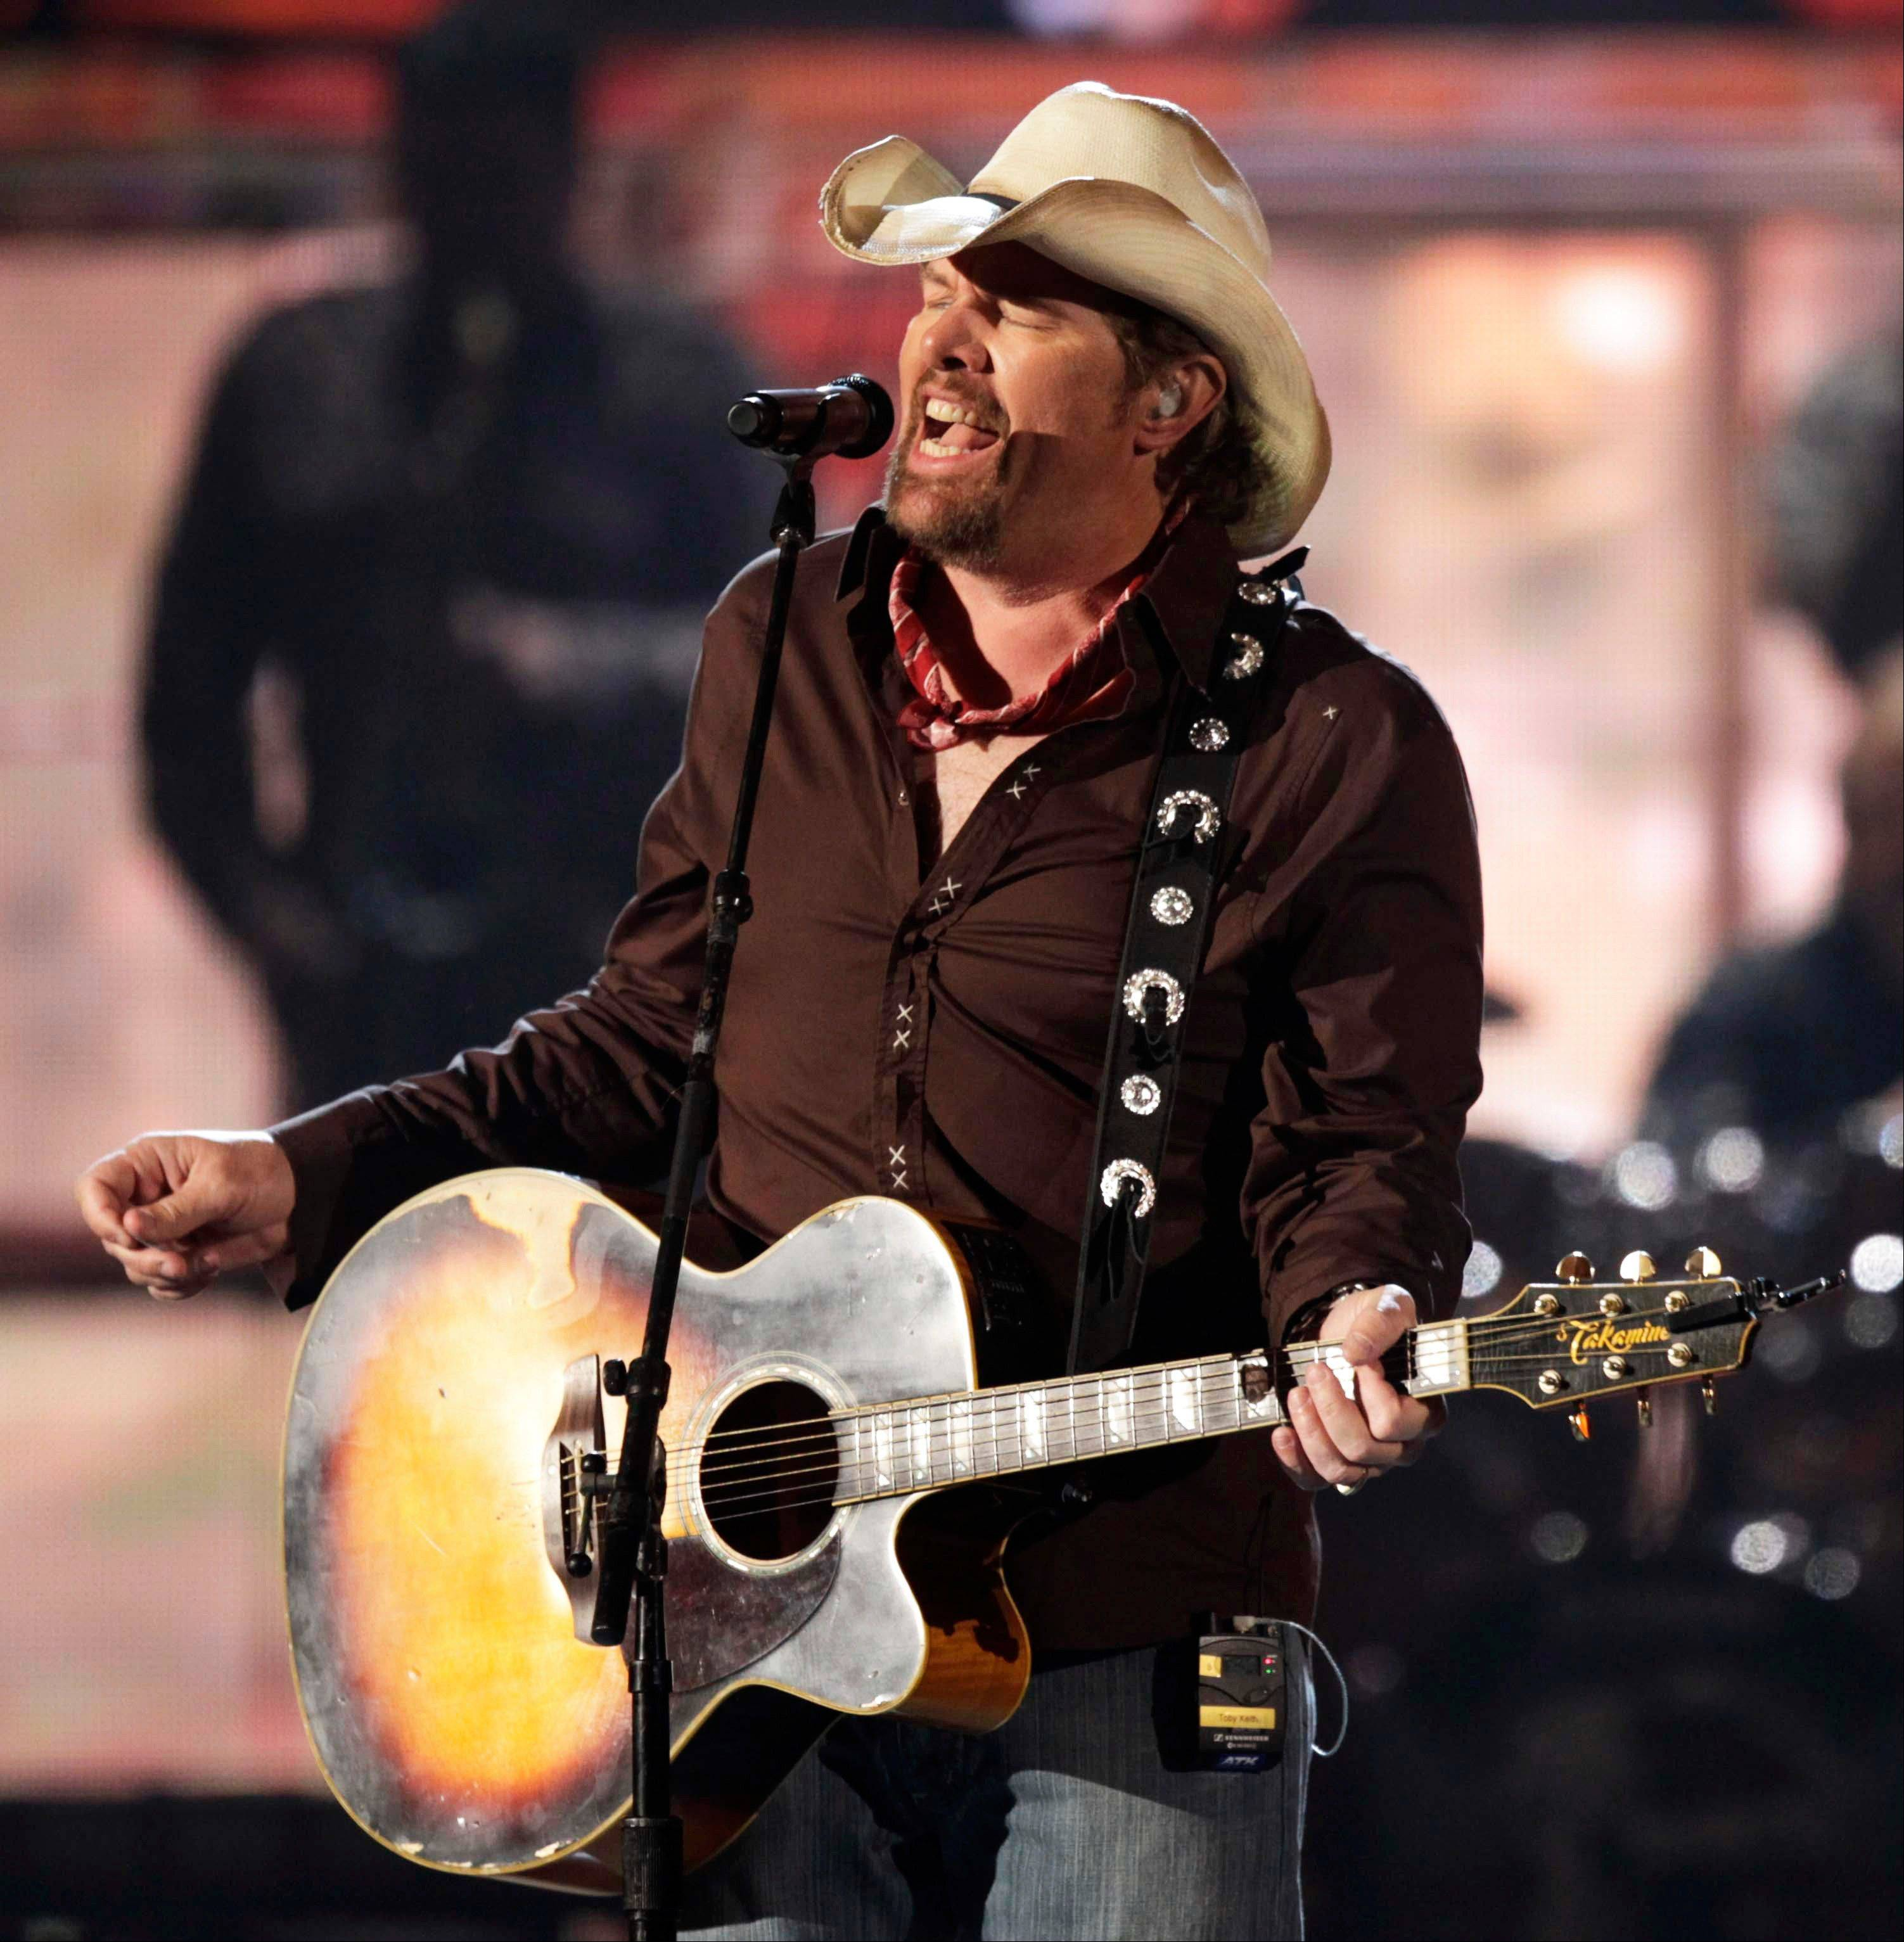 Toby Keith will take the stage at the Illinois State Fair on Aug. 14. Tickets go on sale beginning at 10 a.m. Saturday via Ticketmaster.